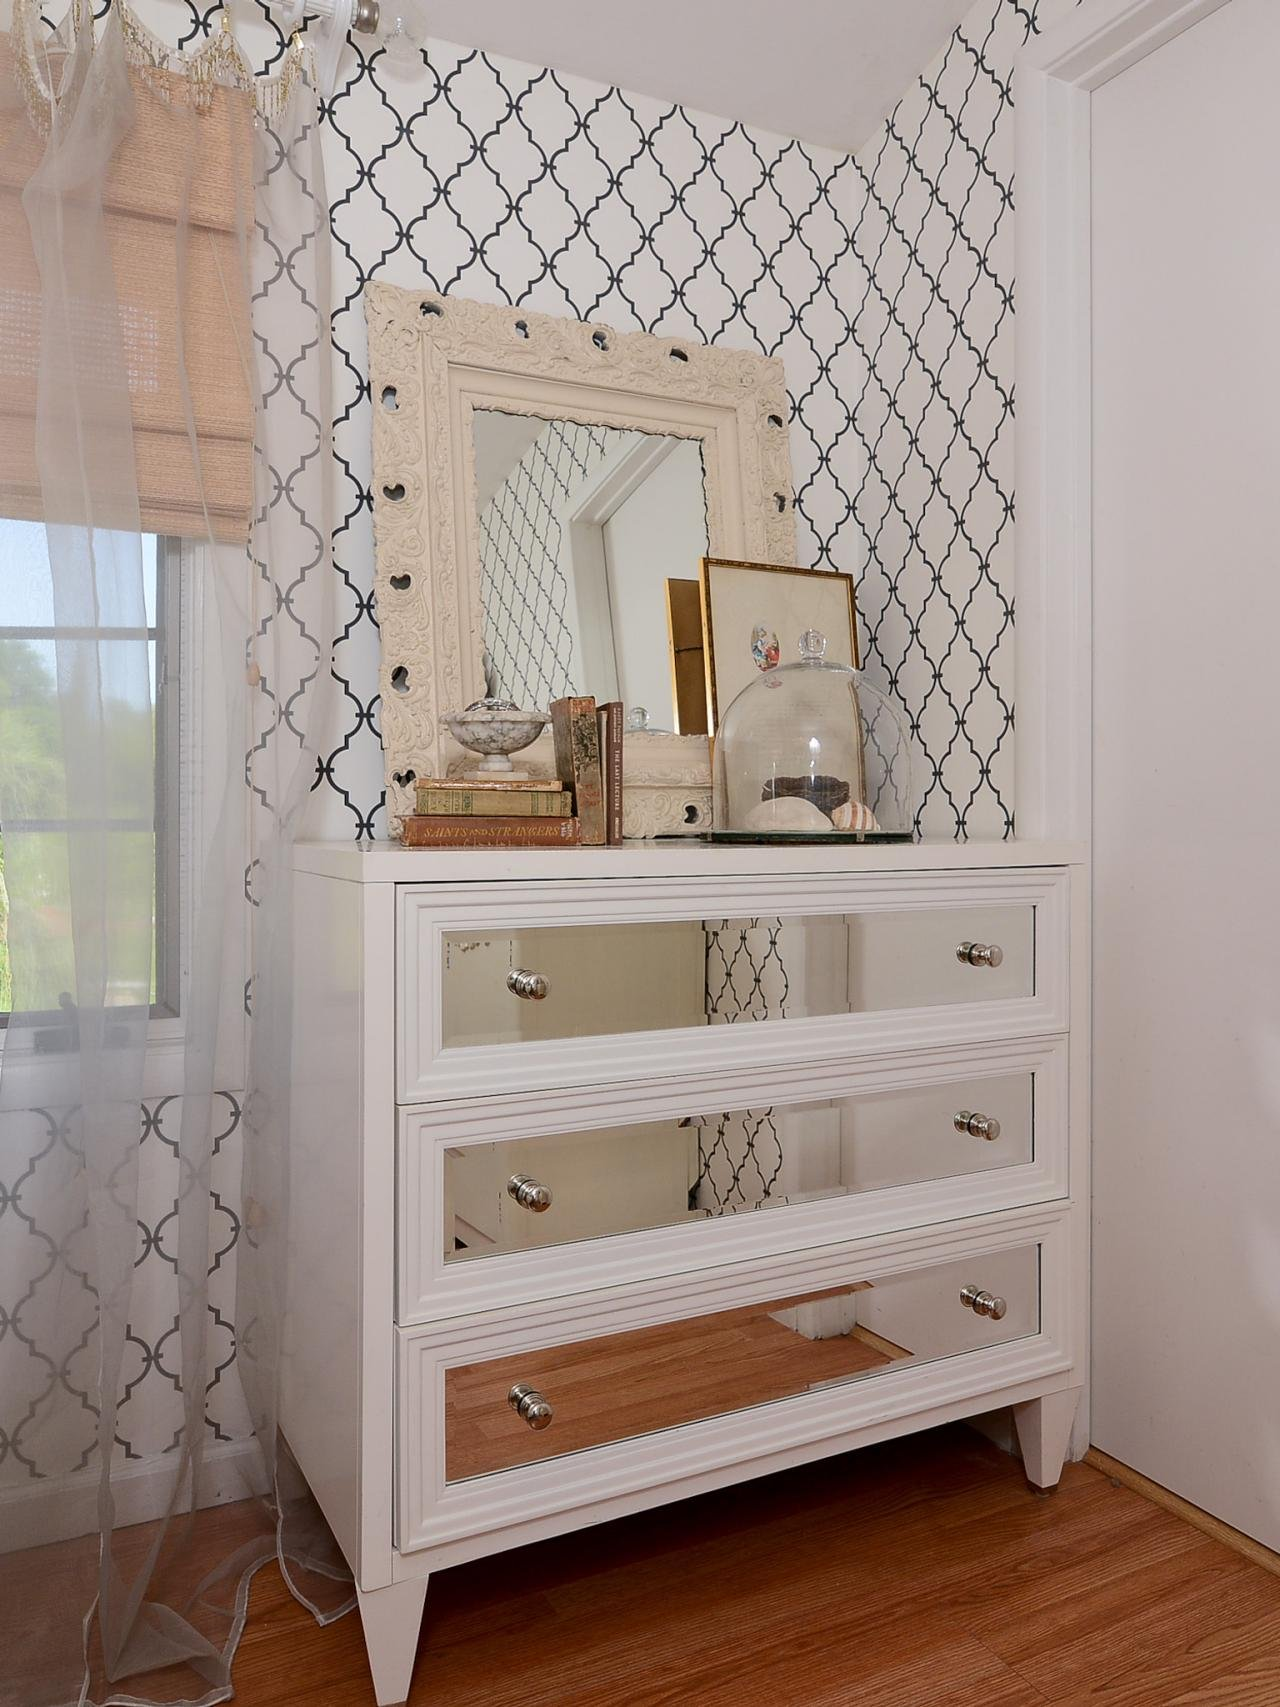 3-drawers-mirrored-chest-on-wooden-floor-and-wall-paper-for-home-interior-design-ideas-white-mirrored-chest-oak-chest-of-drawers-cheap-mirrored-chest-of-drawers-mirrored-bedroom-furniture-mirrored-med